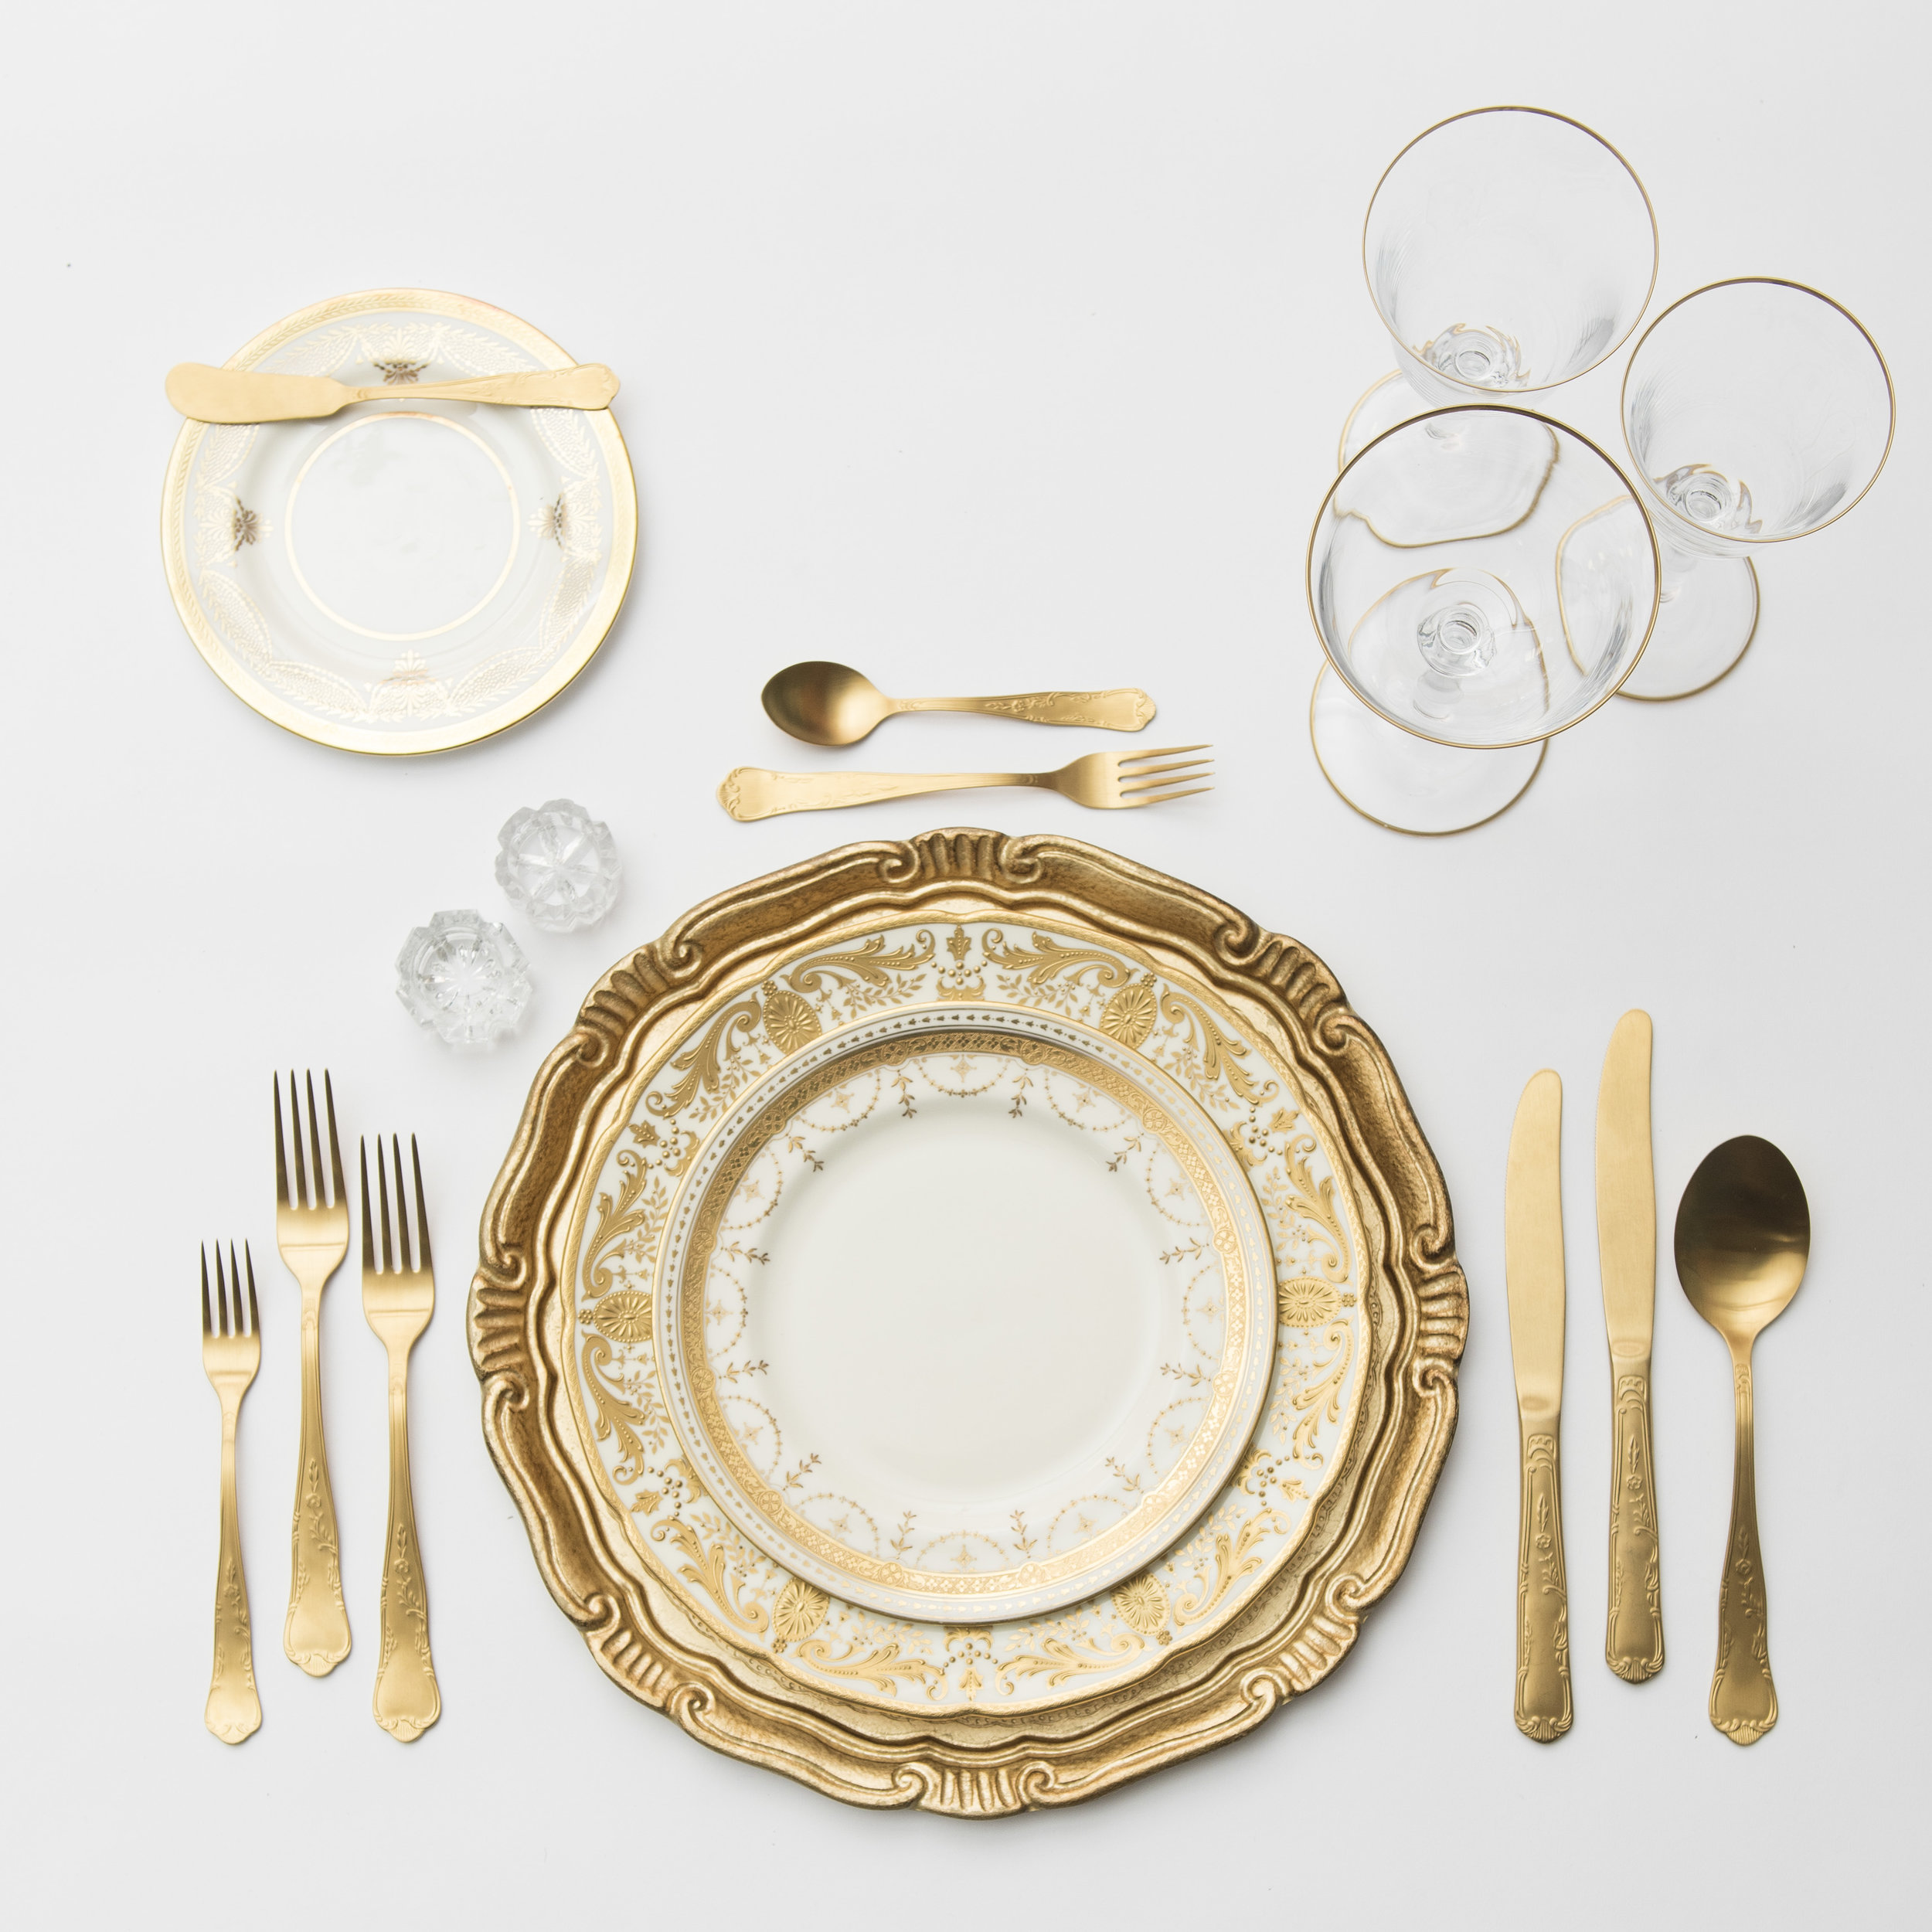 RENT: Florentine Chargers in Gold + Crown Gold Collection Vintage China + Chateau Flatware in Matte Gold + Chloe 24k Gold Rimmed Stemware + Antique Crystal Salt Cellars   SHOP: Florentine Chargers in Gold + Chloe 24k Gold Rimmed Stemware